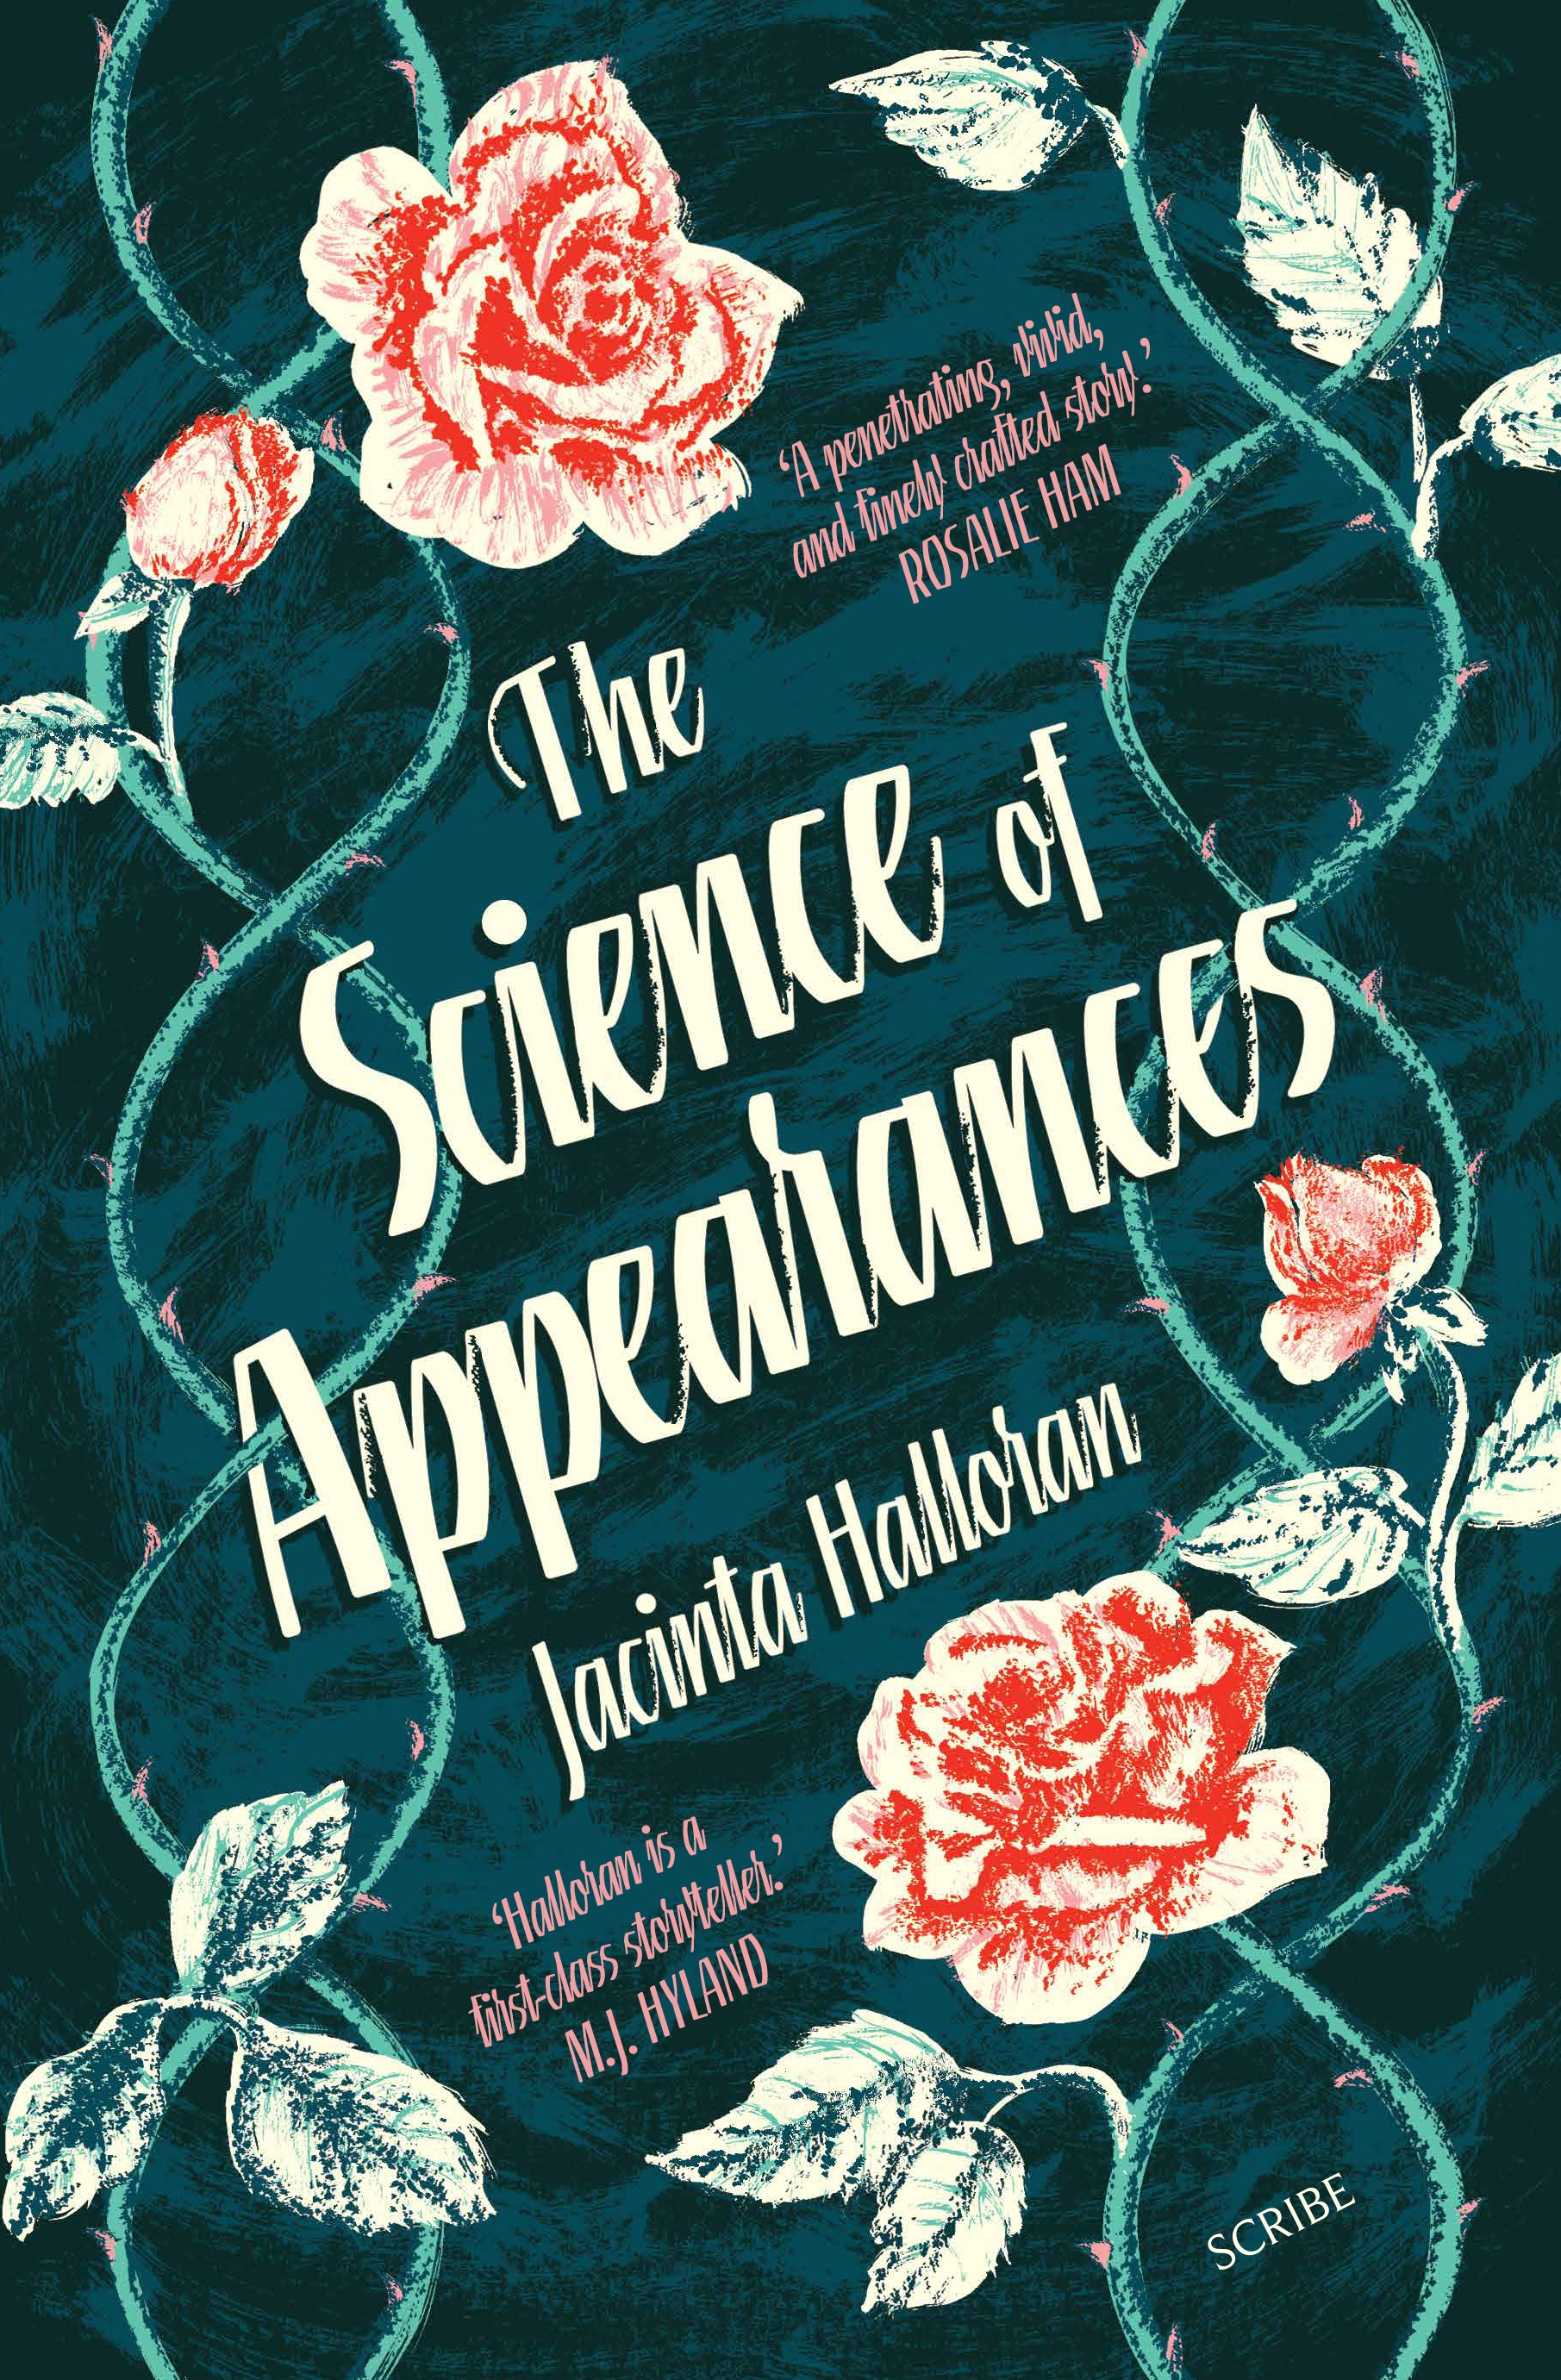 The Science of Appearancesby Jacinta Halloran